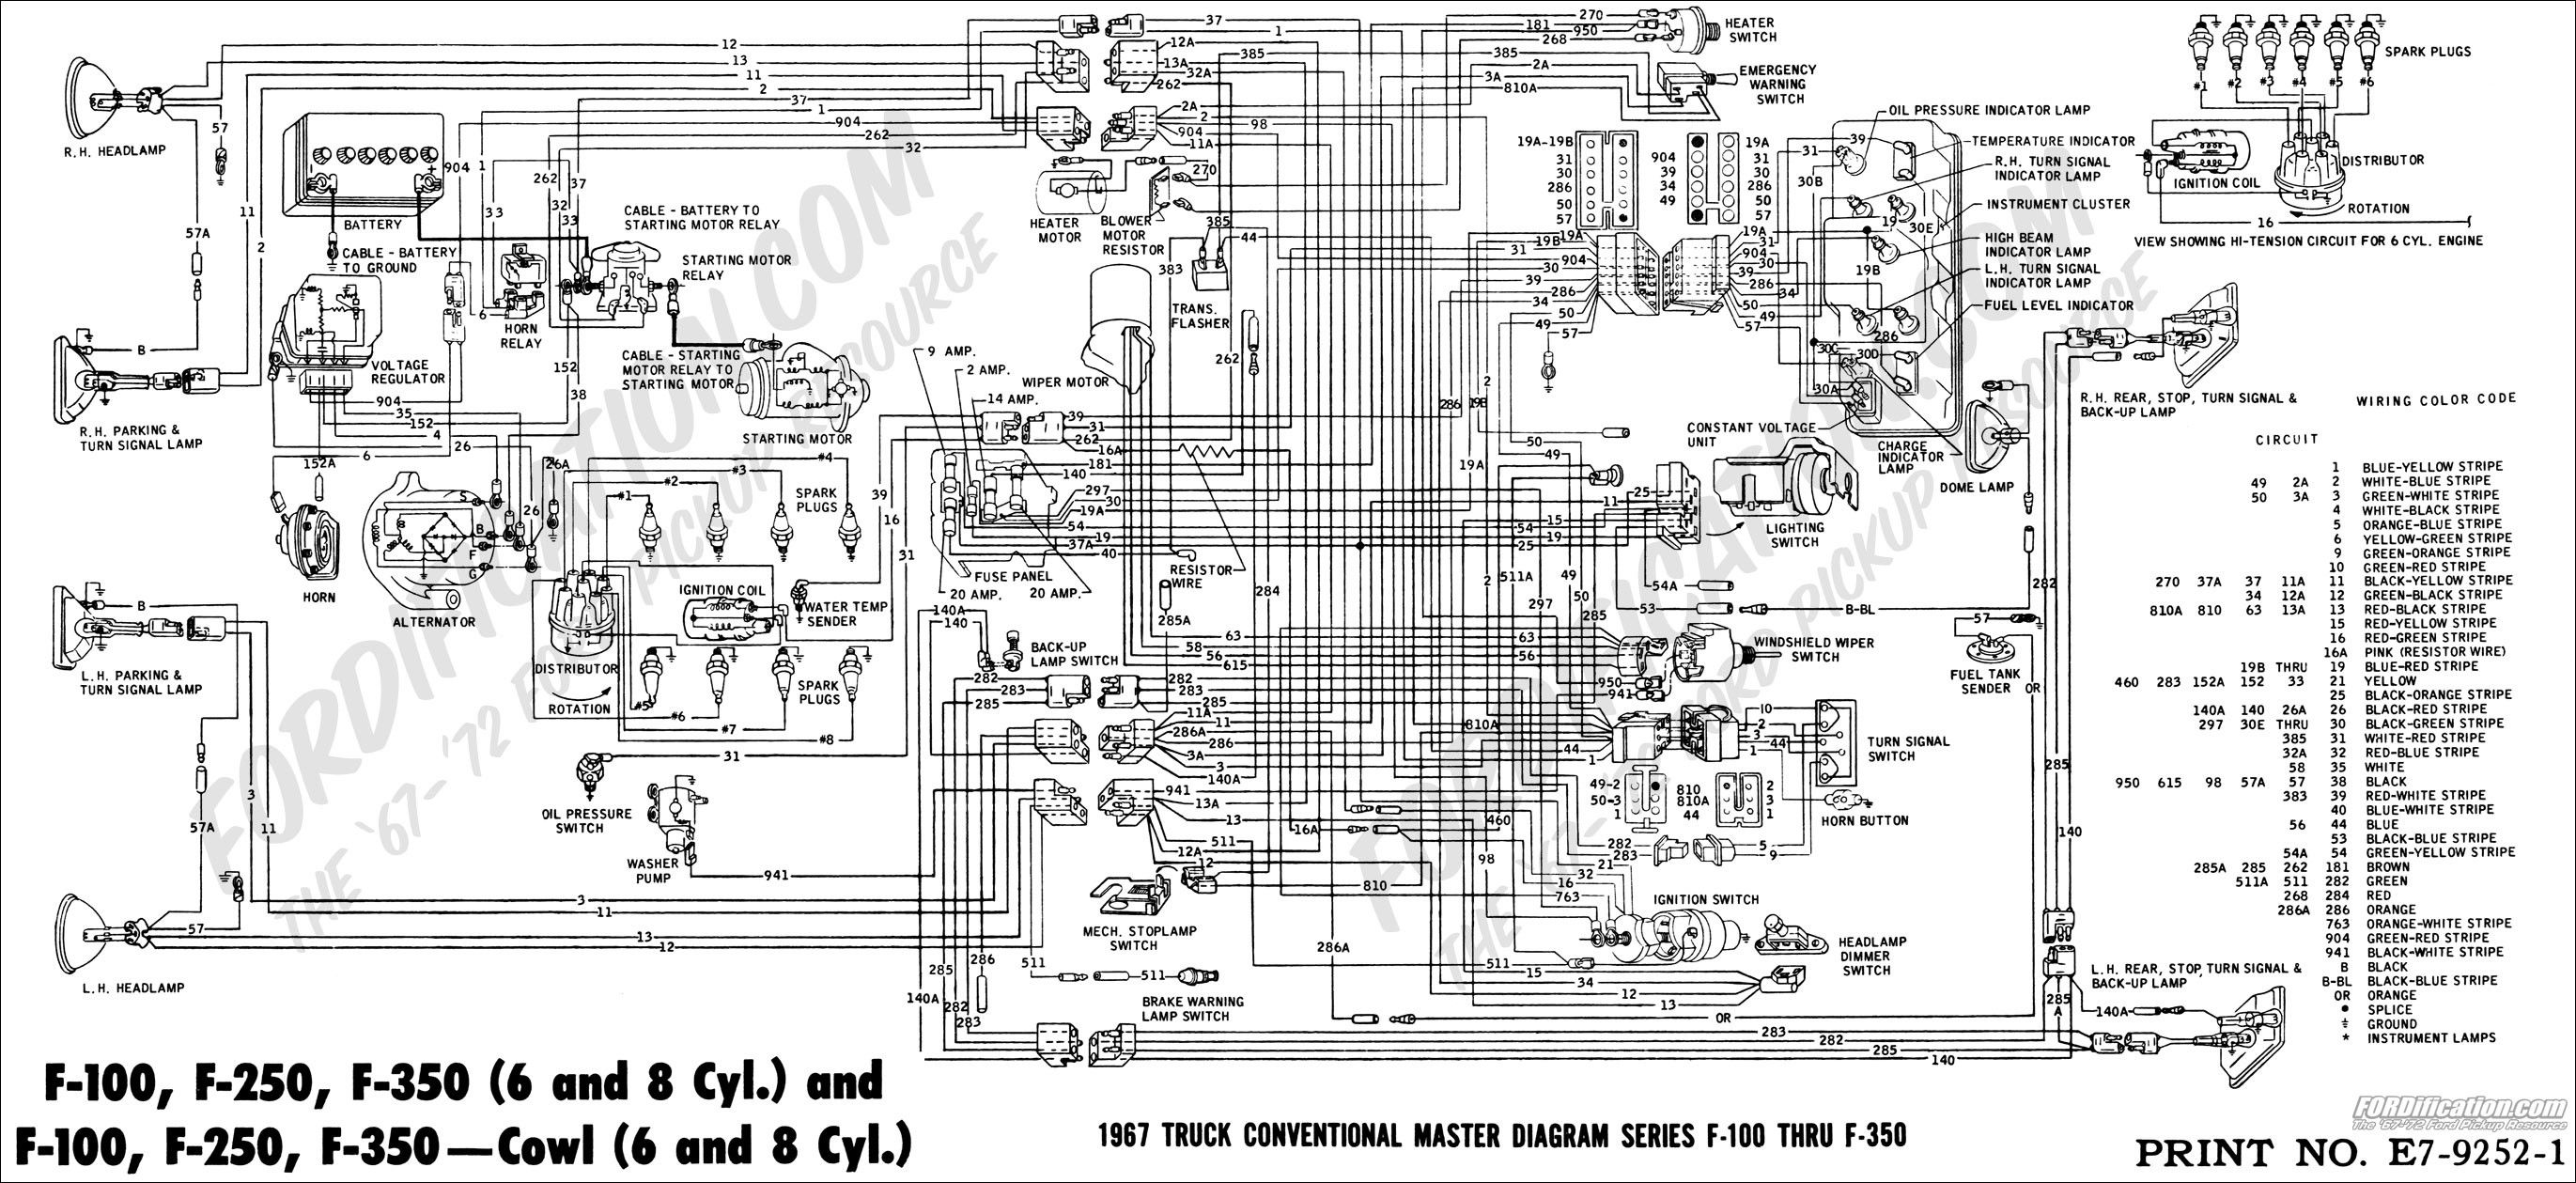 6 7 Powerstroke Wiring Diagrams In 2021 Ford Ranger Ford F150 F150